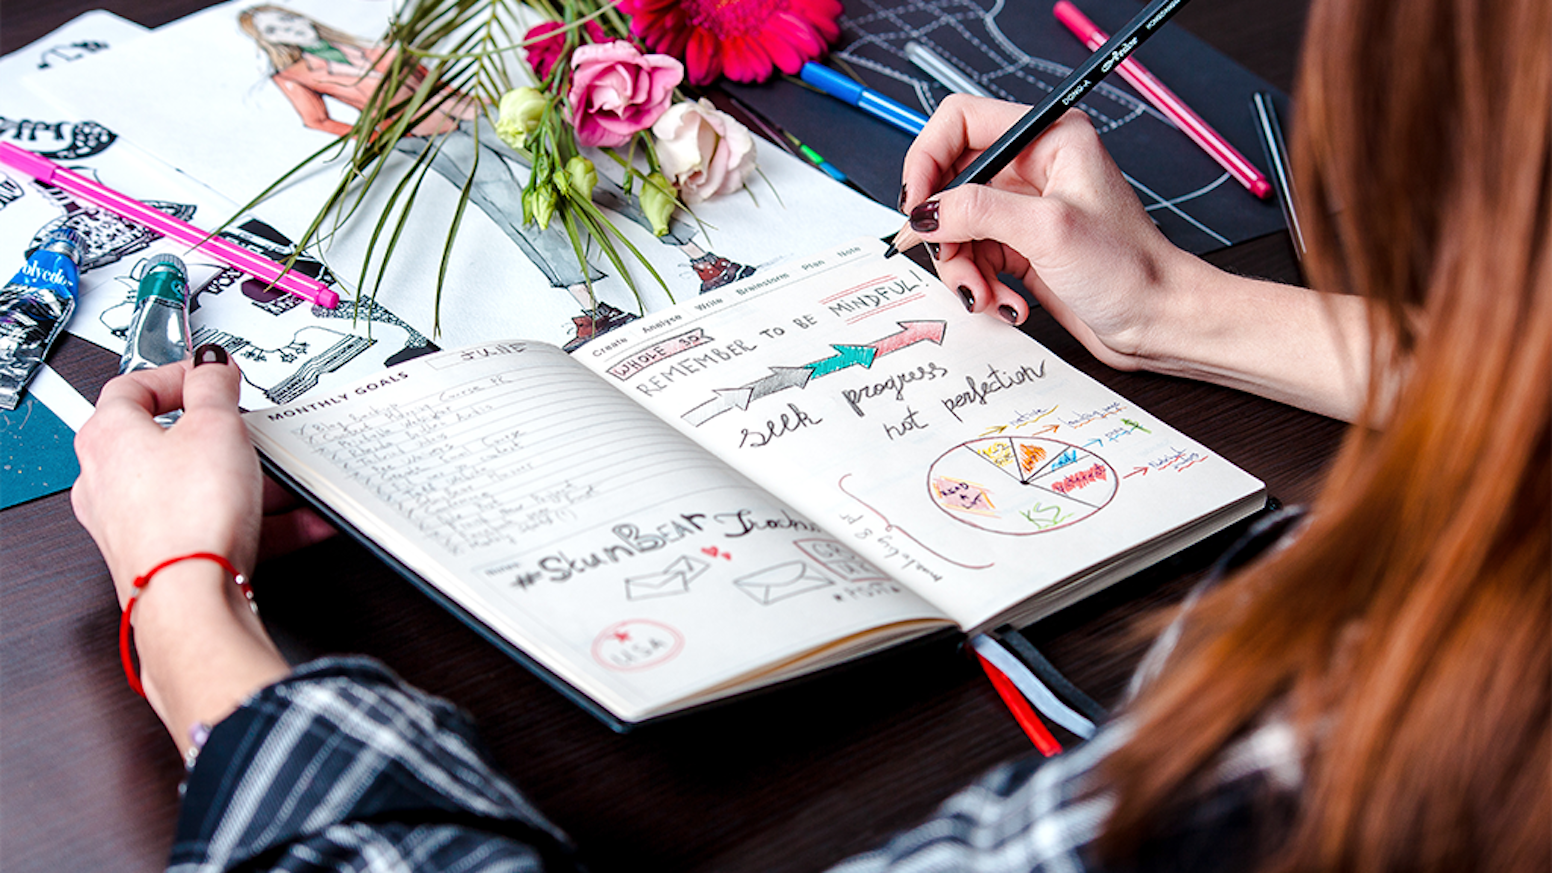 Elegantly designed & crafted for enjoyable planning and note-taking. Combines form and function to elevate your everyday goals.